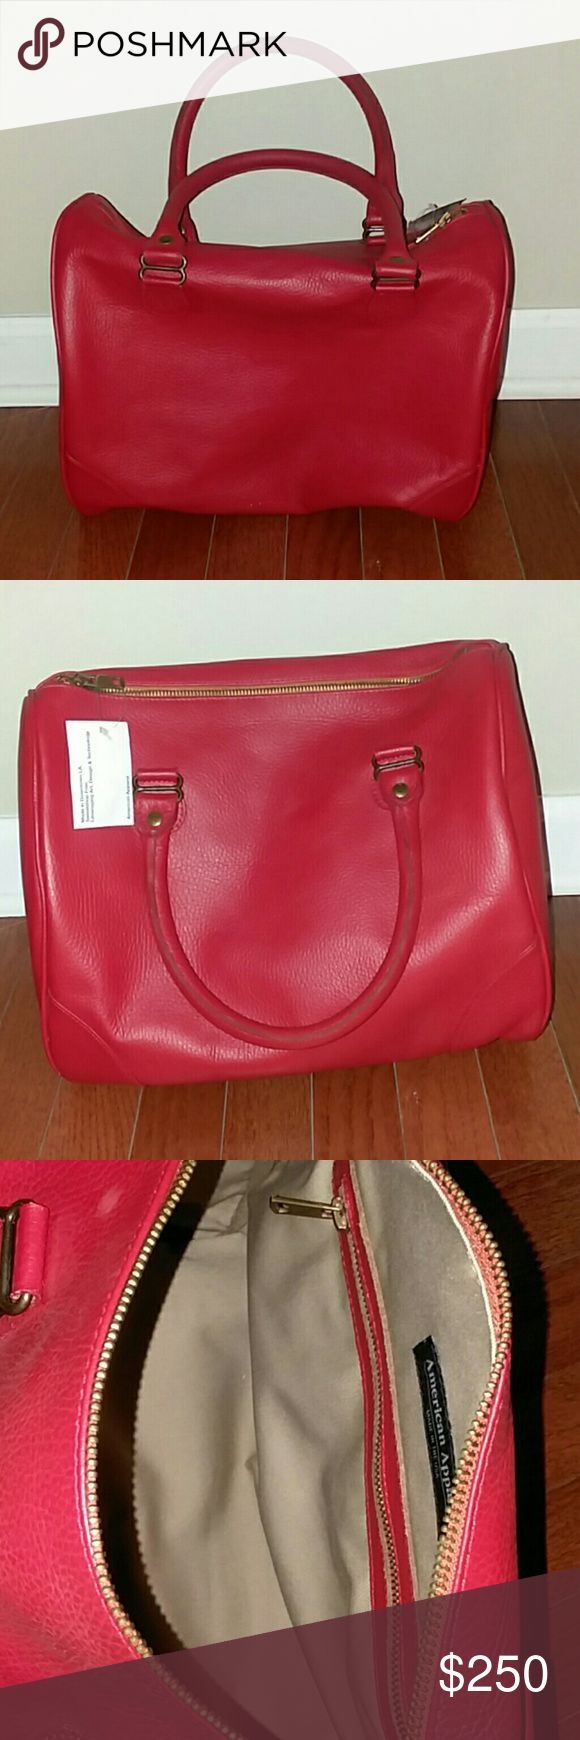 American Apparel red leather shoulder handbag. American Apparel red  leather handbag made in the USA.  New with tags. There are a few white dots on the purse,  not really noticeable but a close up is added in the picture section. Looks like paint  chip from sitting on the shelf.  Not sure if it'll come out or not. So know this before purchasing. American Apparel Bags